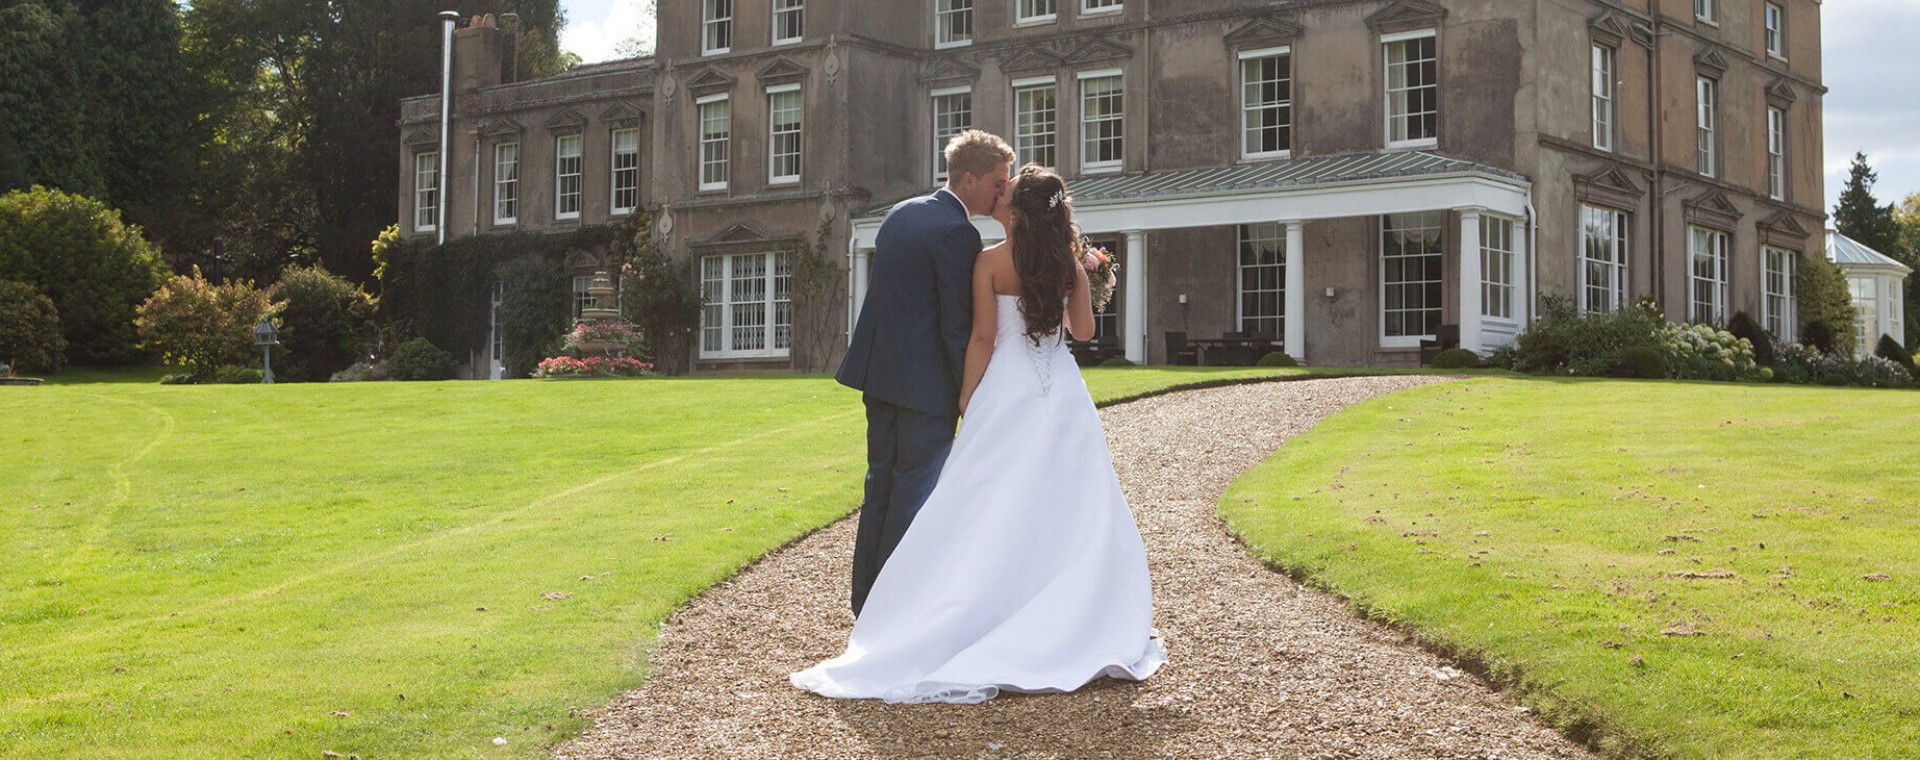 Husband and bride kissing in front of Hexton Manor